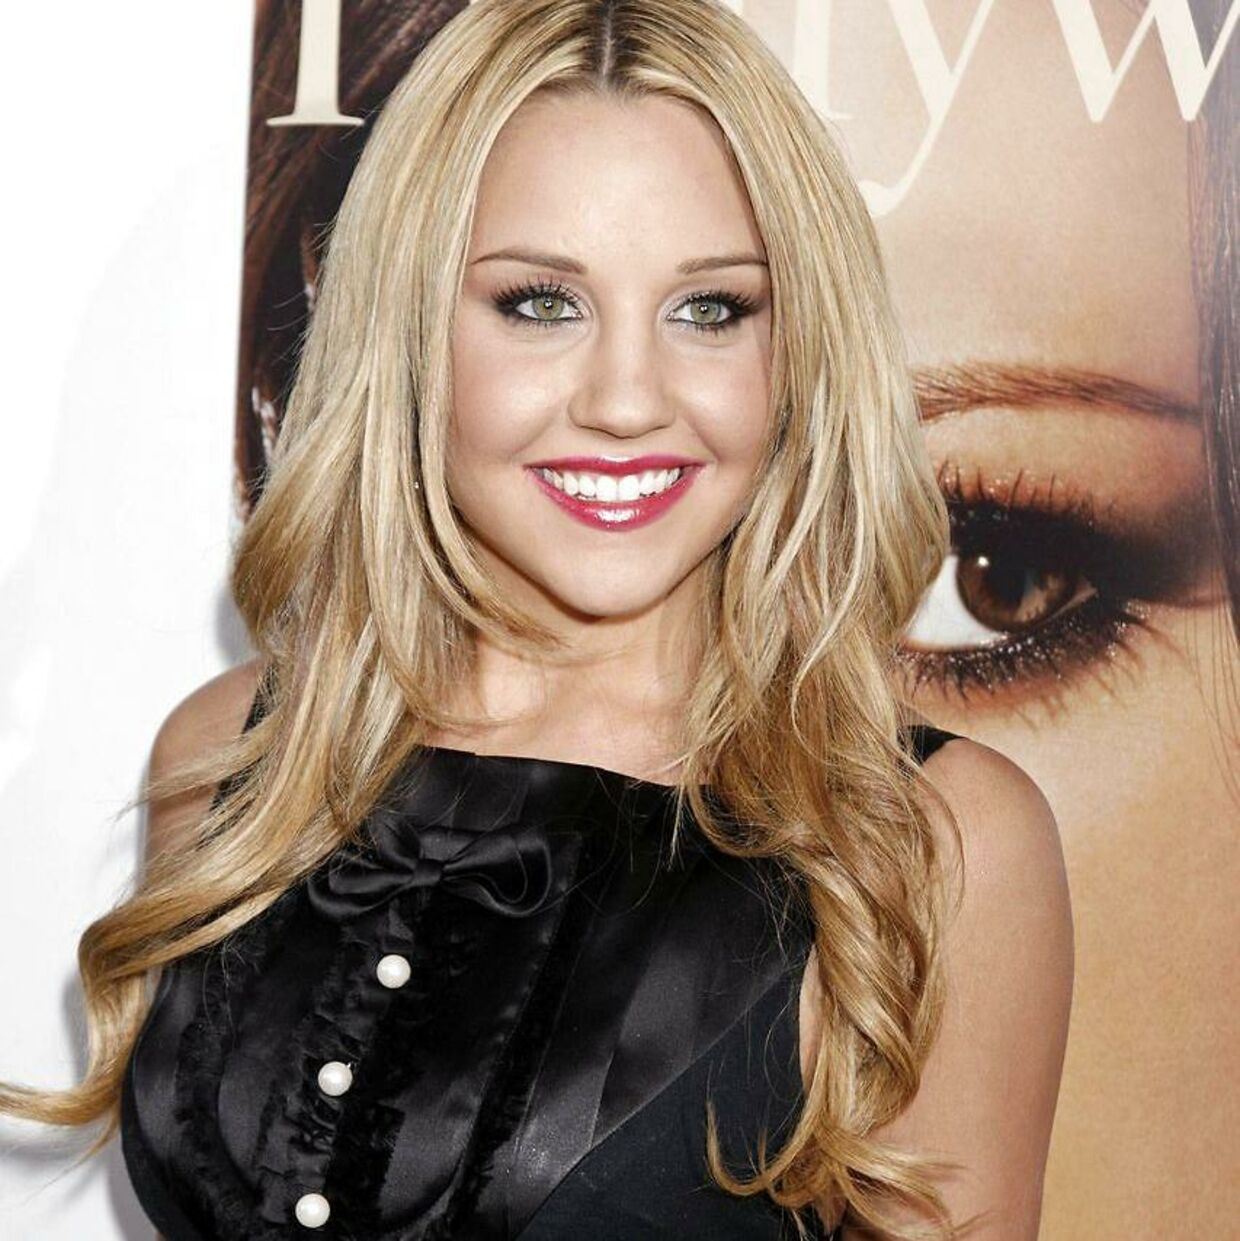 Her ses Amanda Bynes ved 'Young Hollywood Awards' i 2007. REUTERS/Fred Prouser (UNITED STATES)